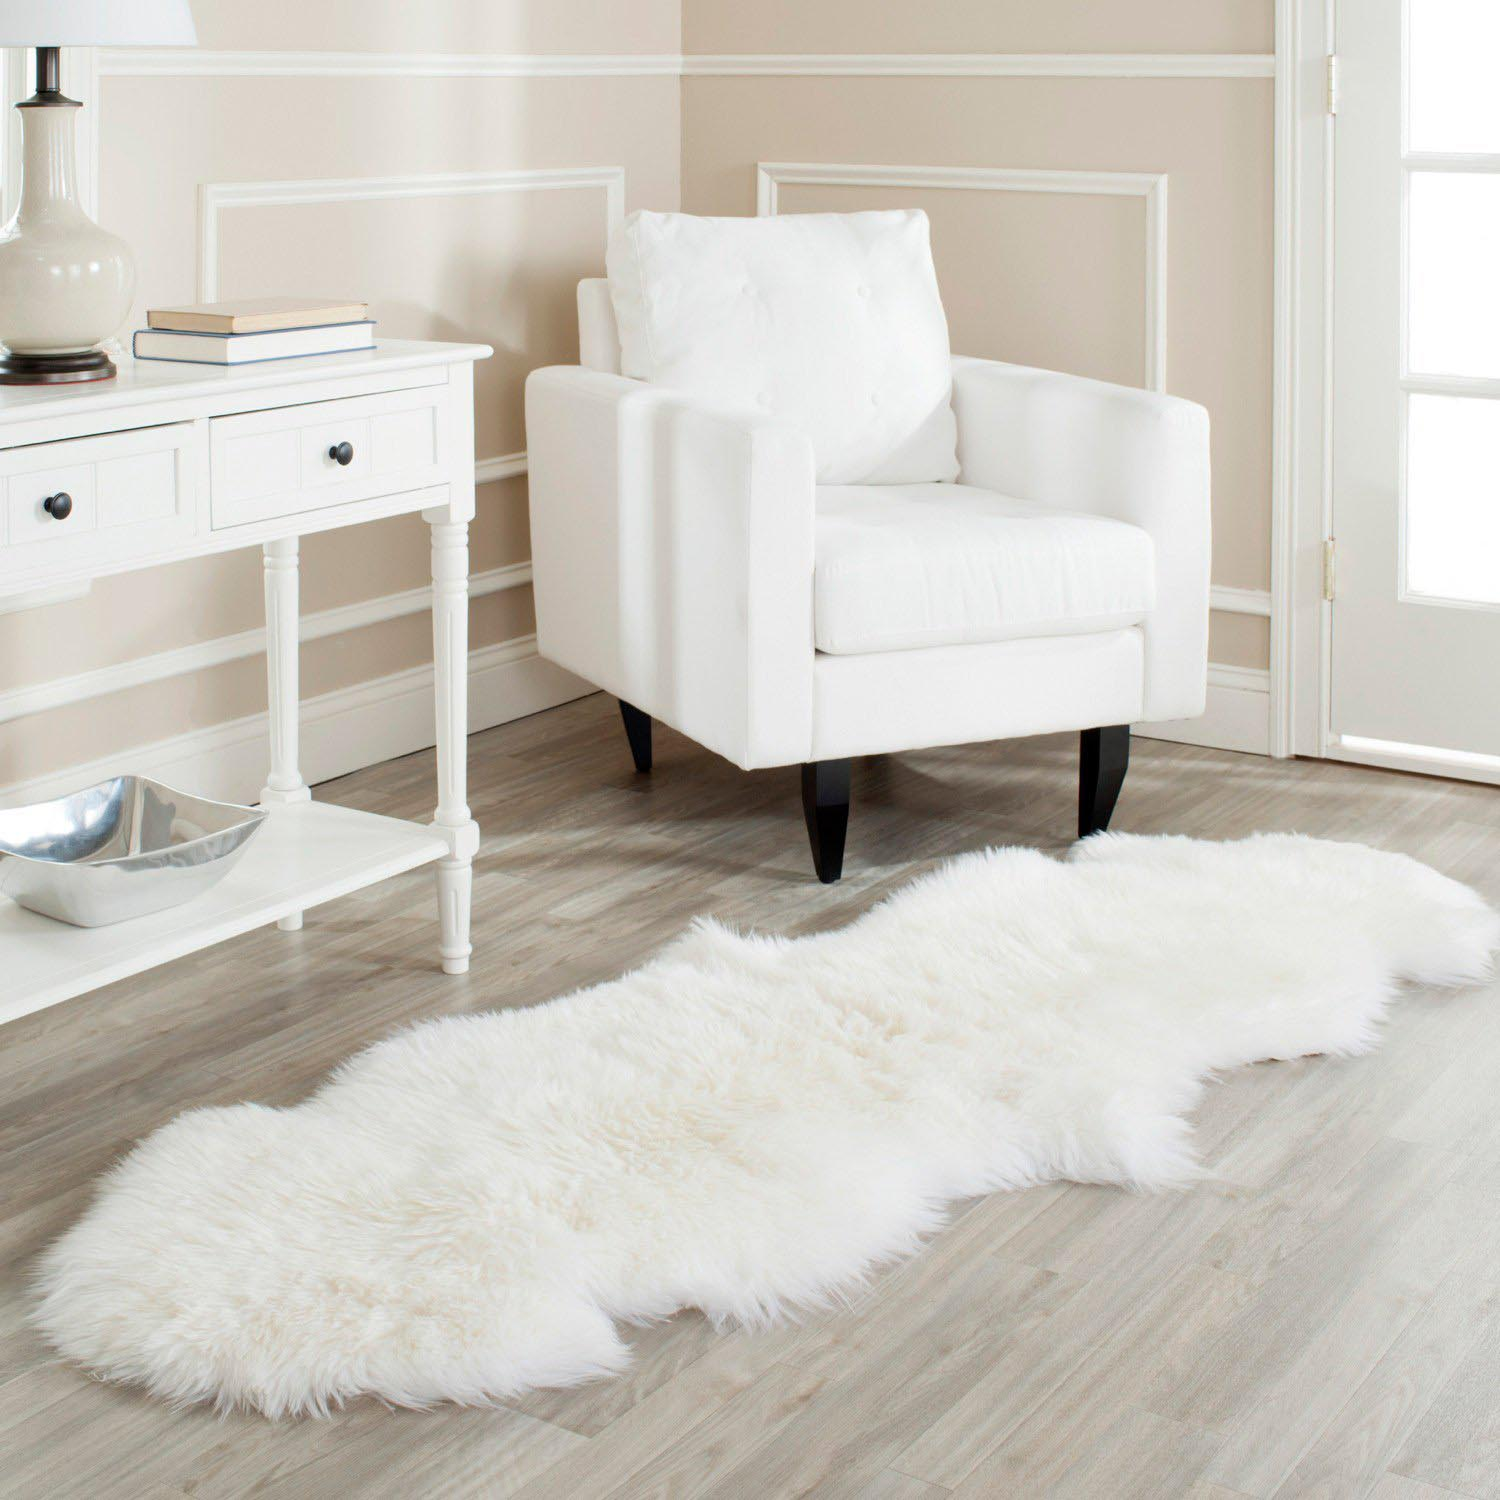 large white furry rugs | best decor things